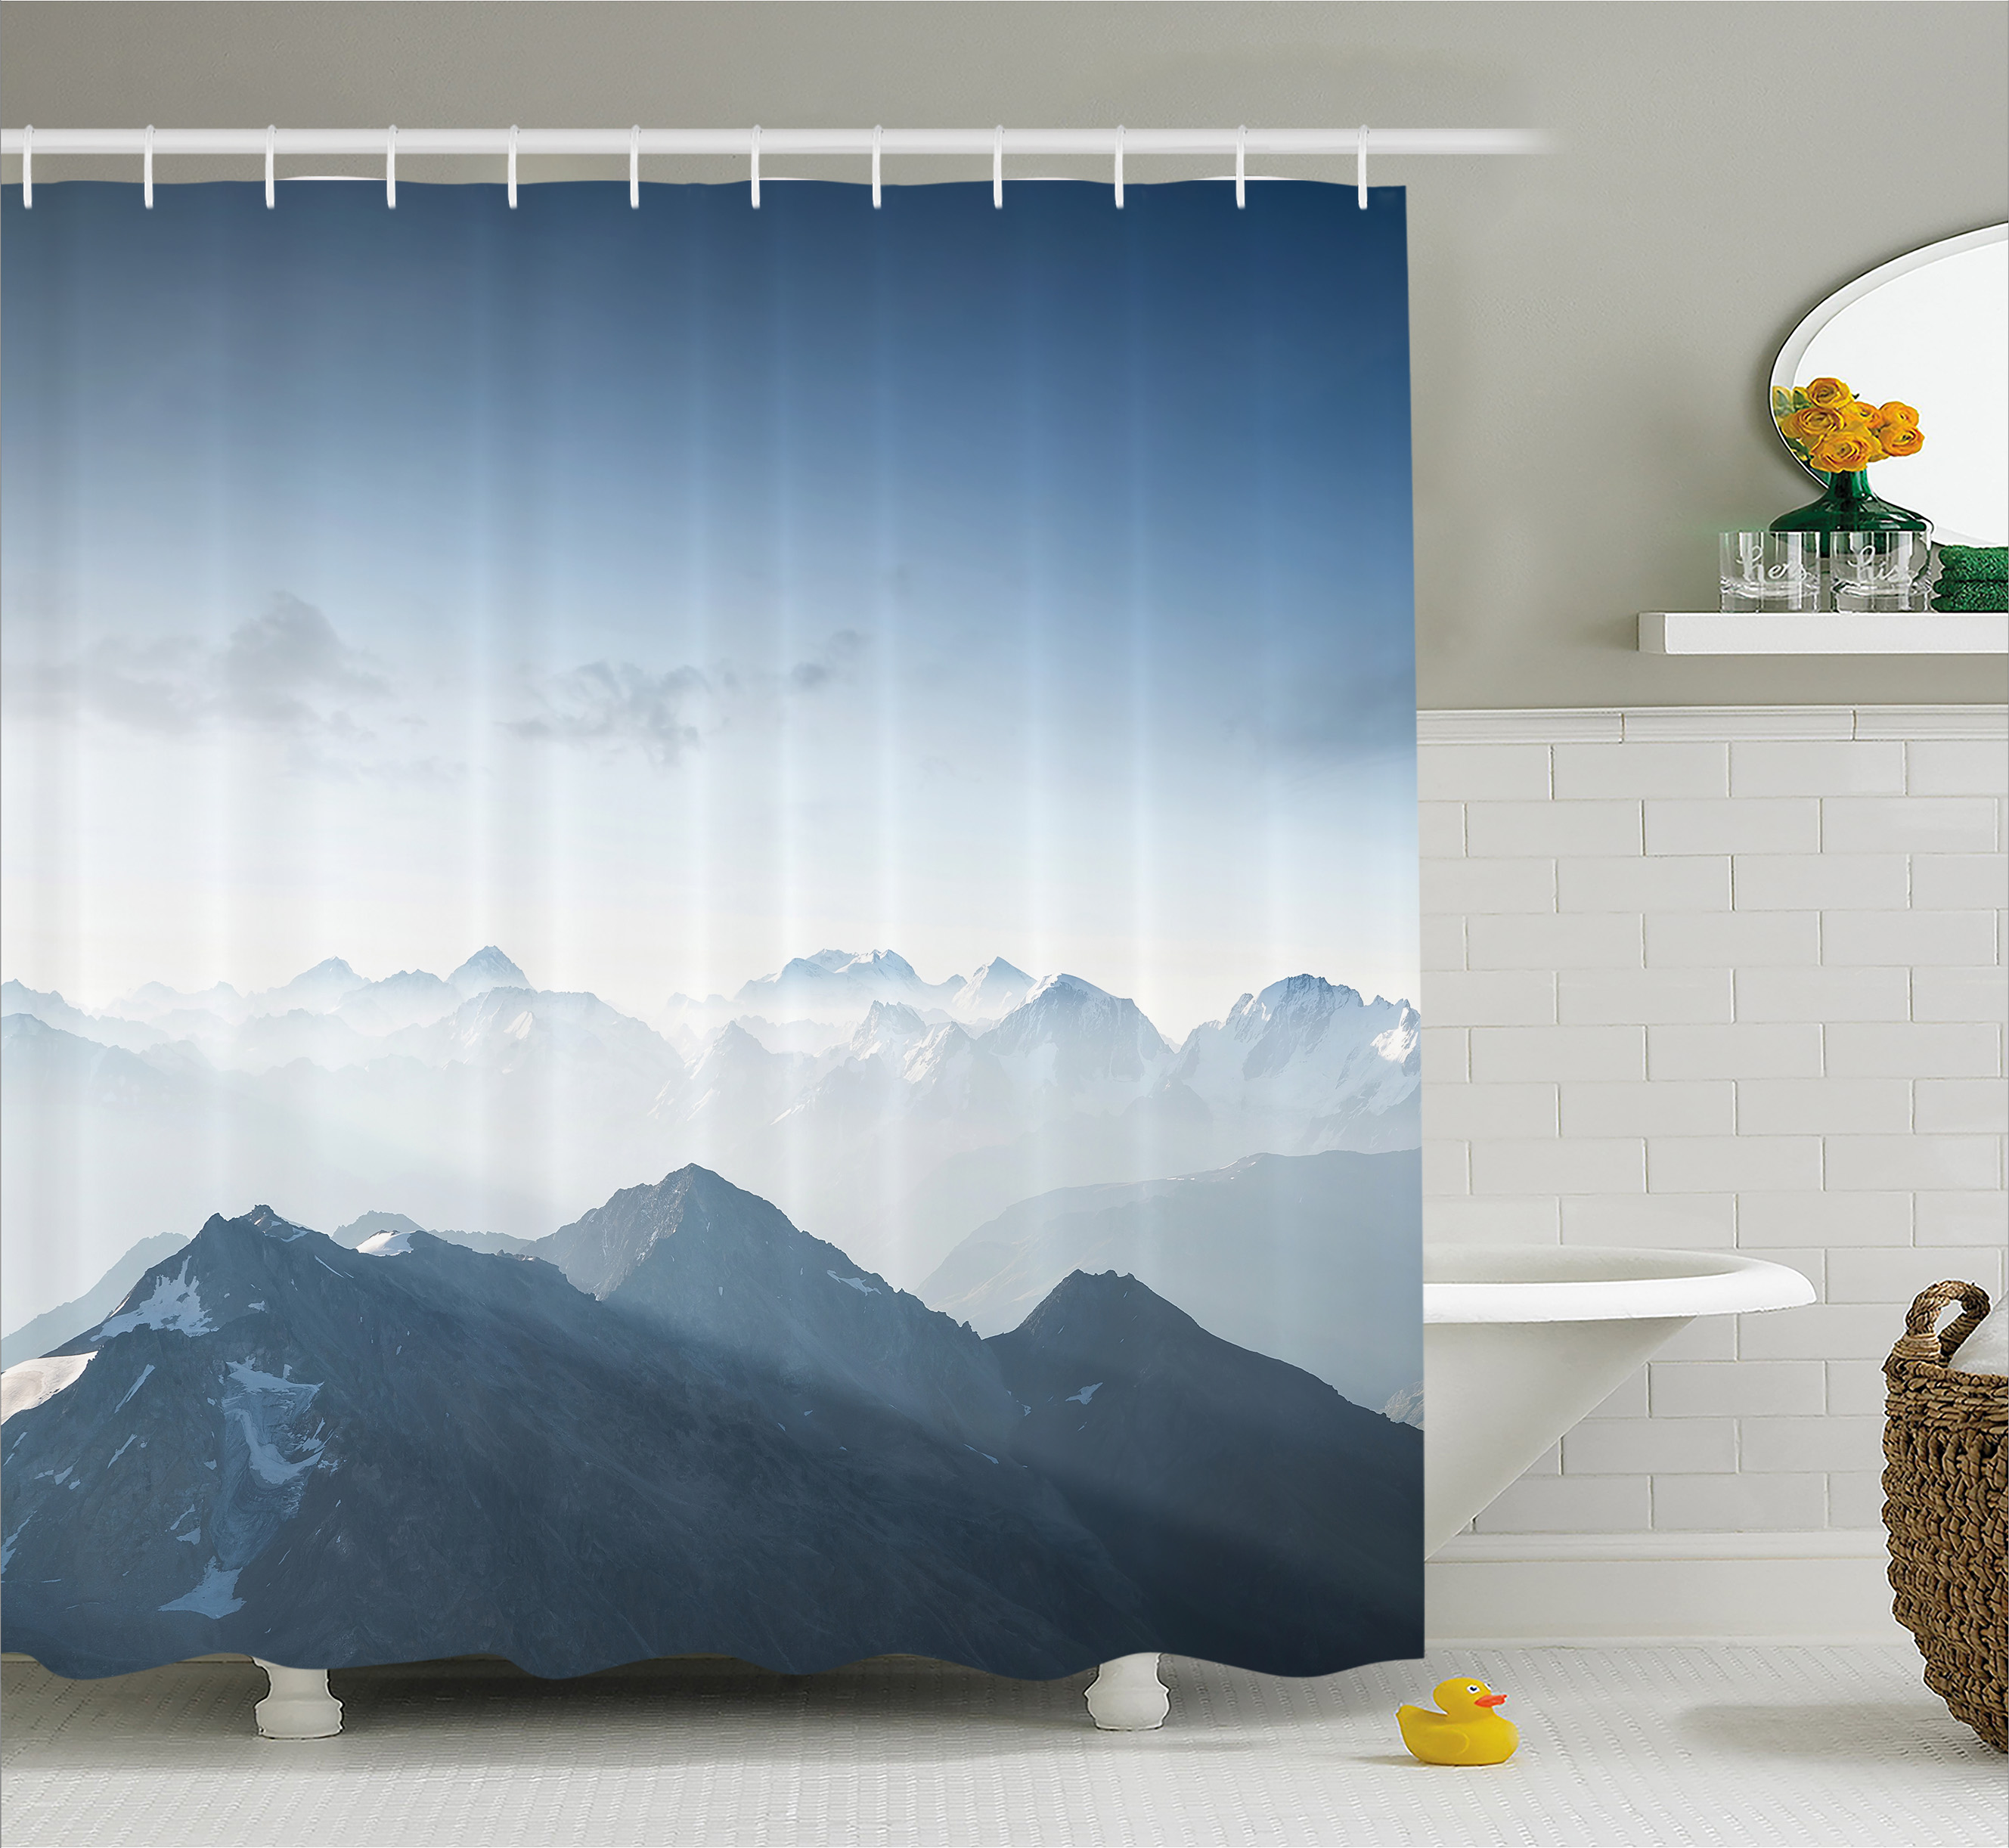 Click here to buy Farmhouse Decor Shower Curtain, Fog Morning in Rock Mountain Region in Northern Hiking Climbing Ice Photo, Fabric Bathroom Set with Hooks,... by Kozmos.